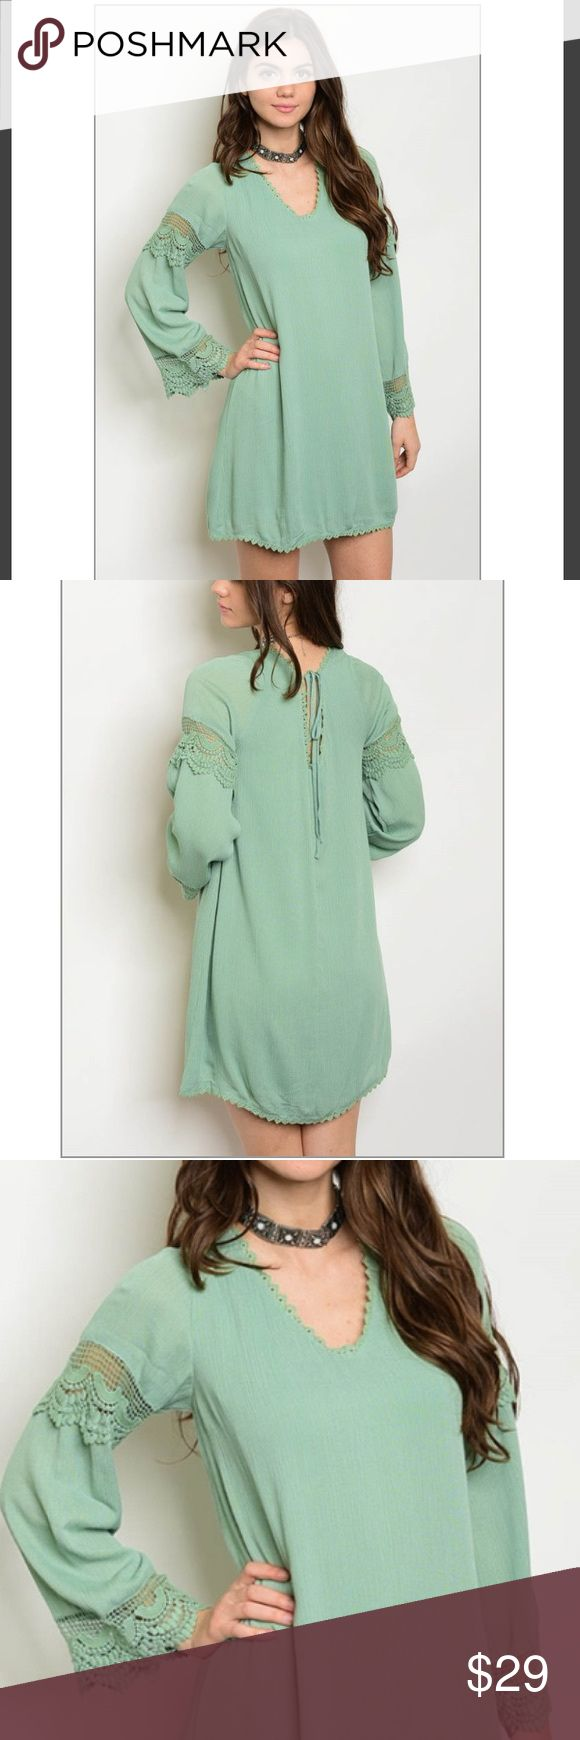 "4 HR SALE! Long sleeve sage Dress Long sleeve sage dress with crochet lace designed sleeves. 100% rayon. Measurements: L: 32"" B: 32 W: 36"". Reasonable offers considered :) Dresses Mini"